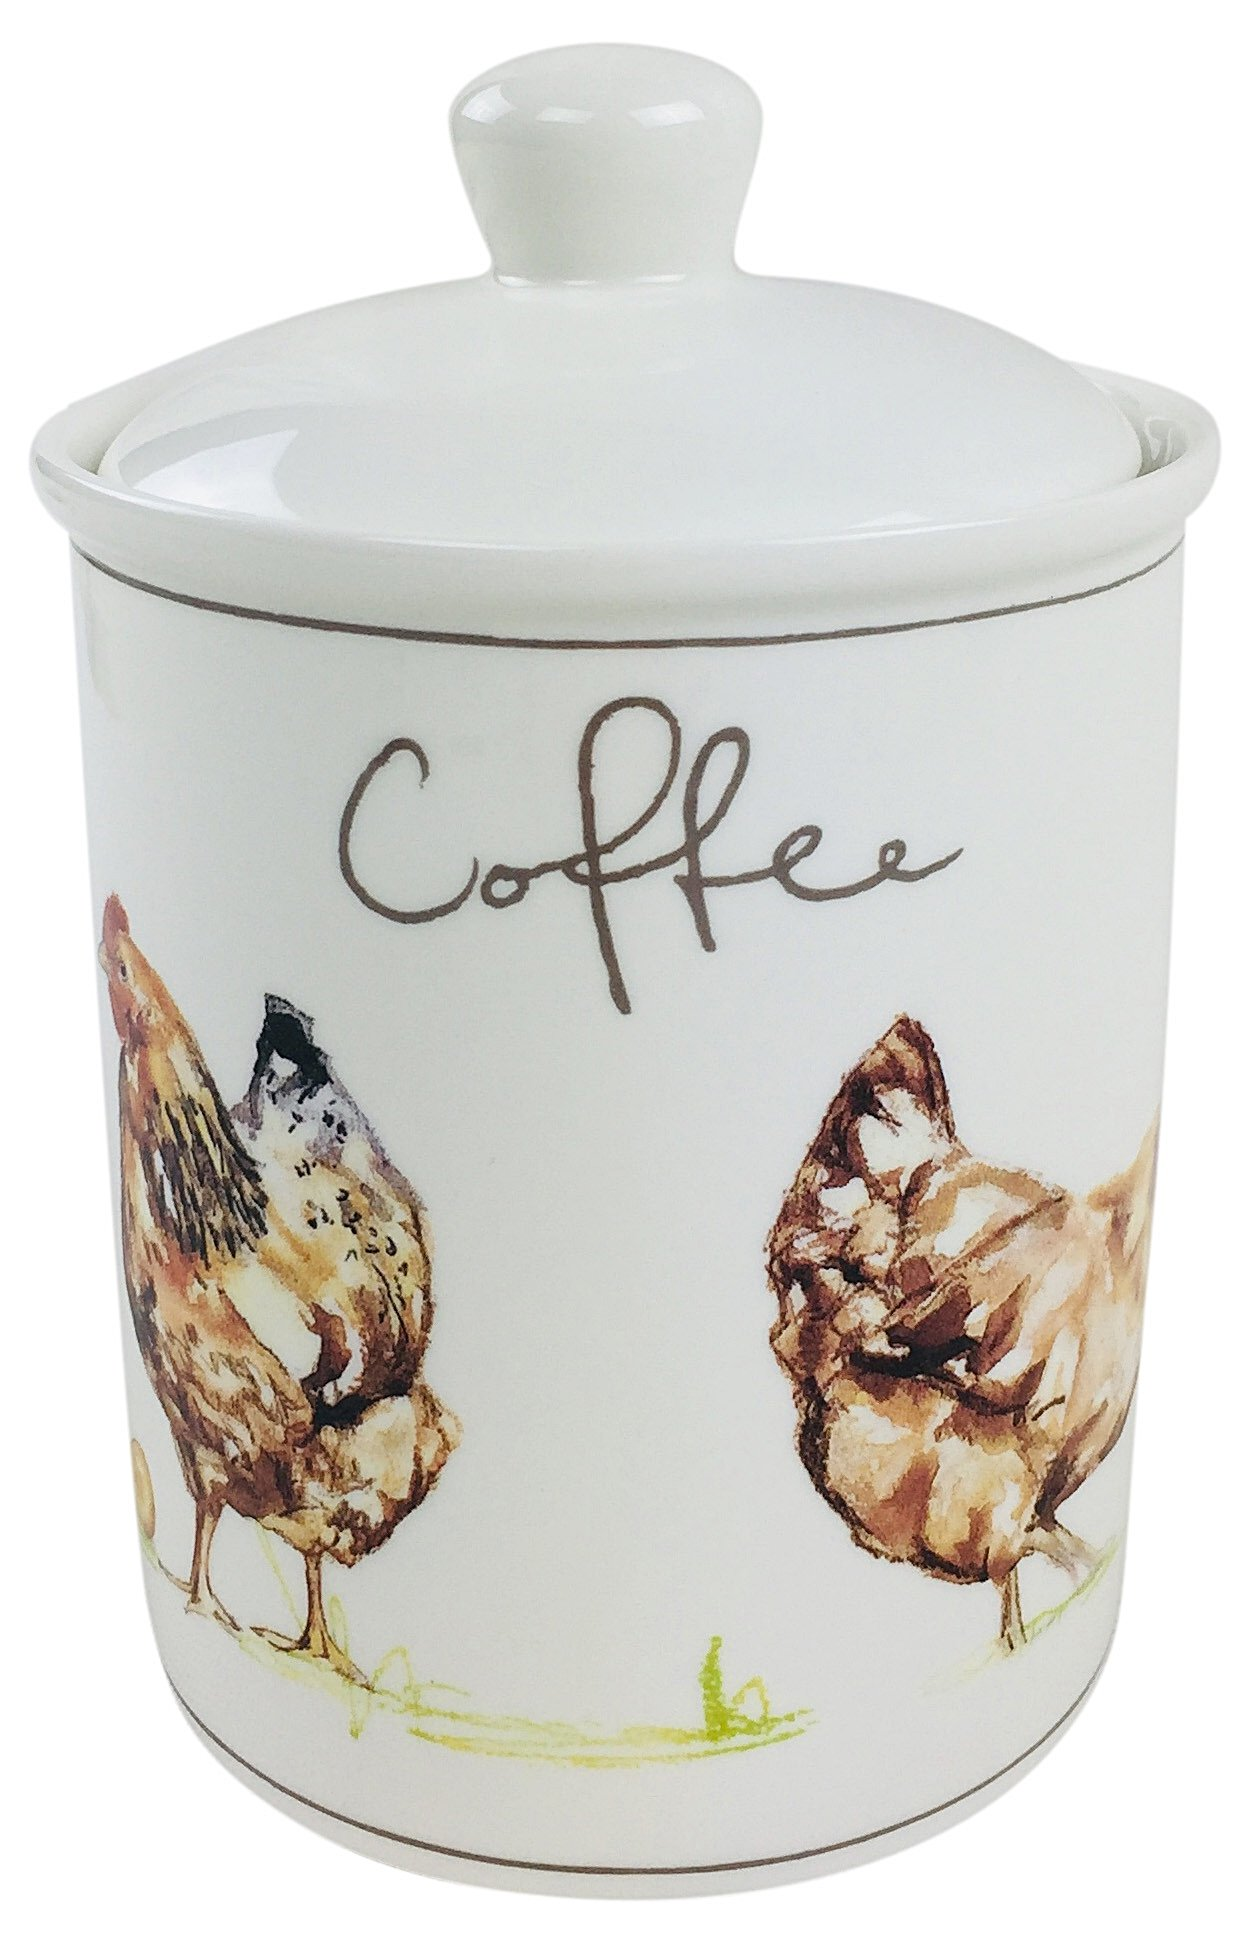 Country Chickens Ceramic Canister - Coffee